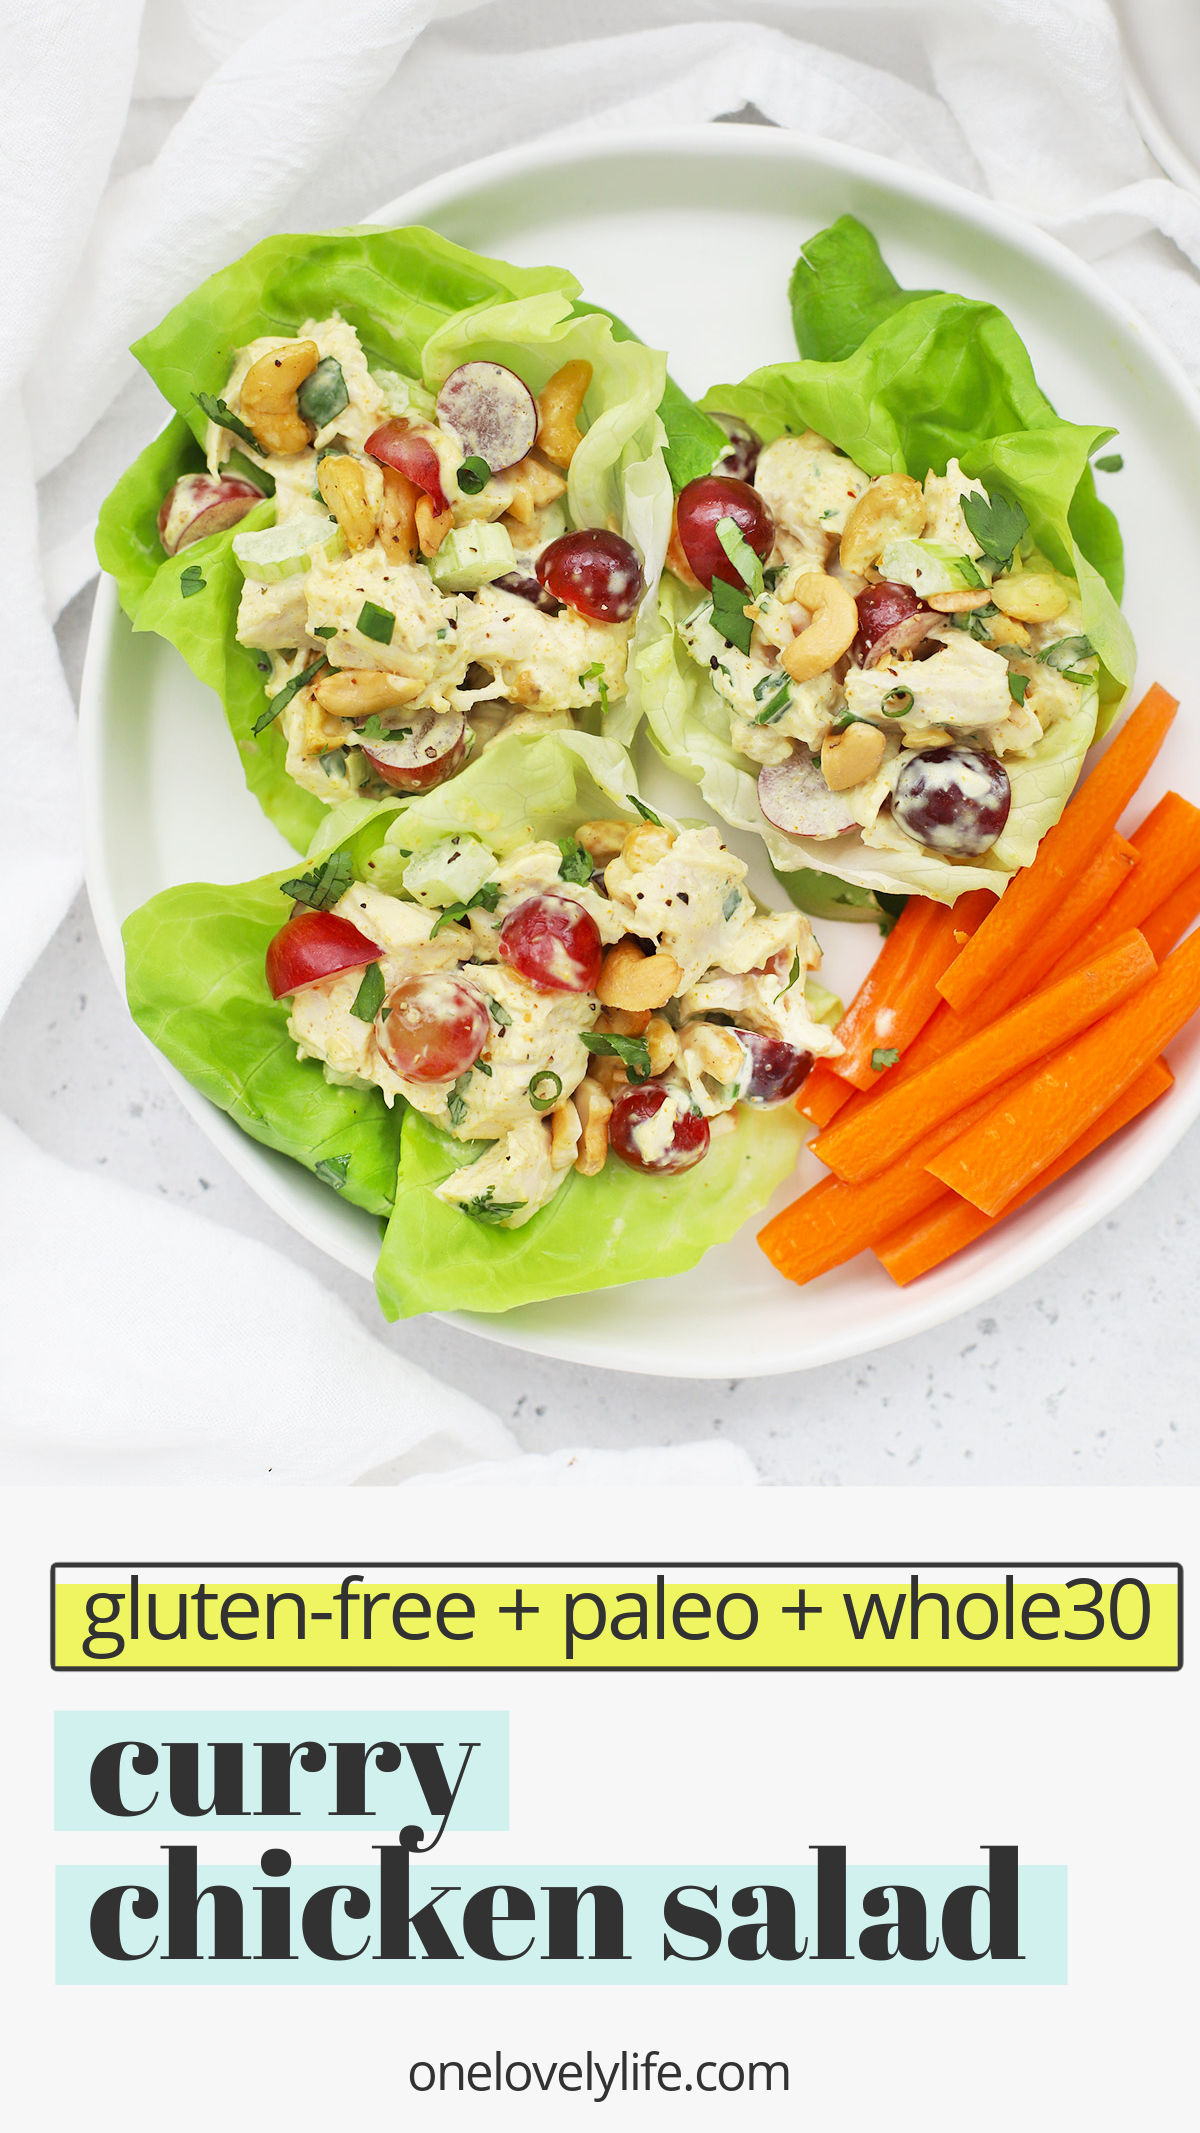 Curry Chicken Salad - Our healthy curry chicken salad with grapes is easy, fresh, and delicious. A perfect easy lunch or dinner any day of the week. (Gluten-Free, Paleo-Friendly, Whole30-Friendly) // Paleo Curry Chicken Salad // Whole30 Curry Chicken Salad // Healthy Meal-Prep Lunch #chickensalad #curry #mealprep #healthylunch #paleo #whole30